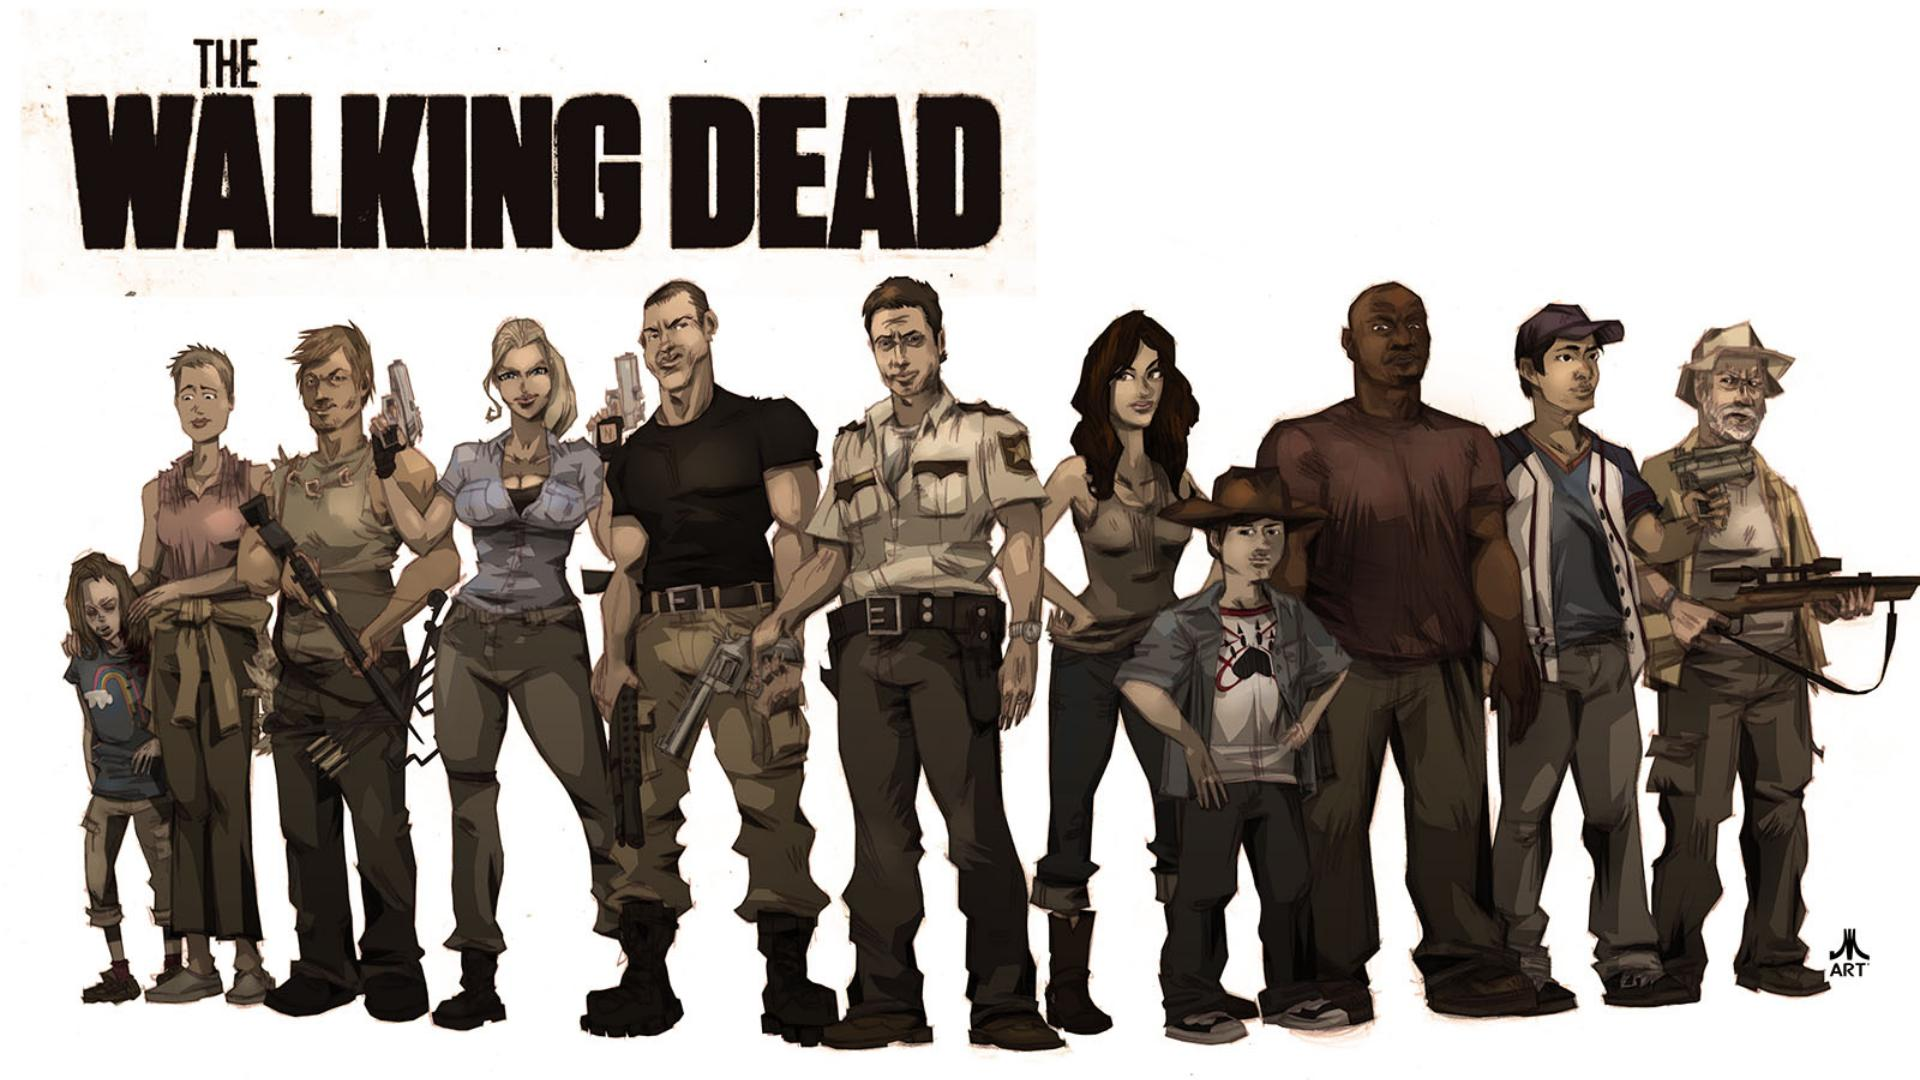 fonds d'écran the walking dead : tous les wallpapers the walking dead